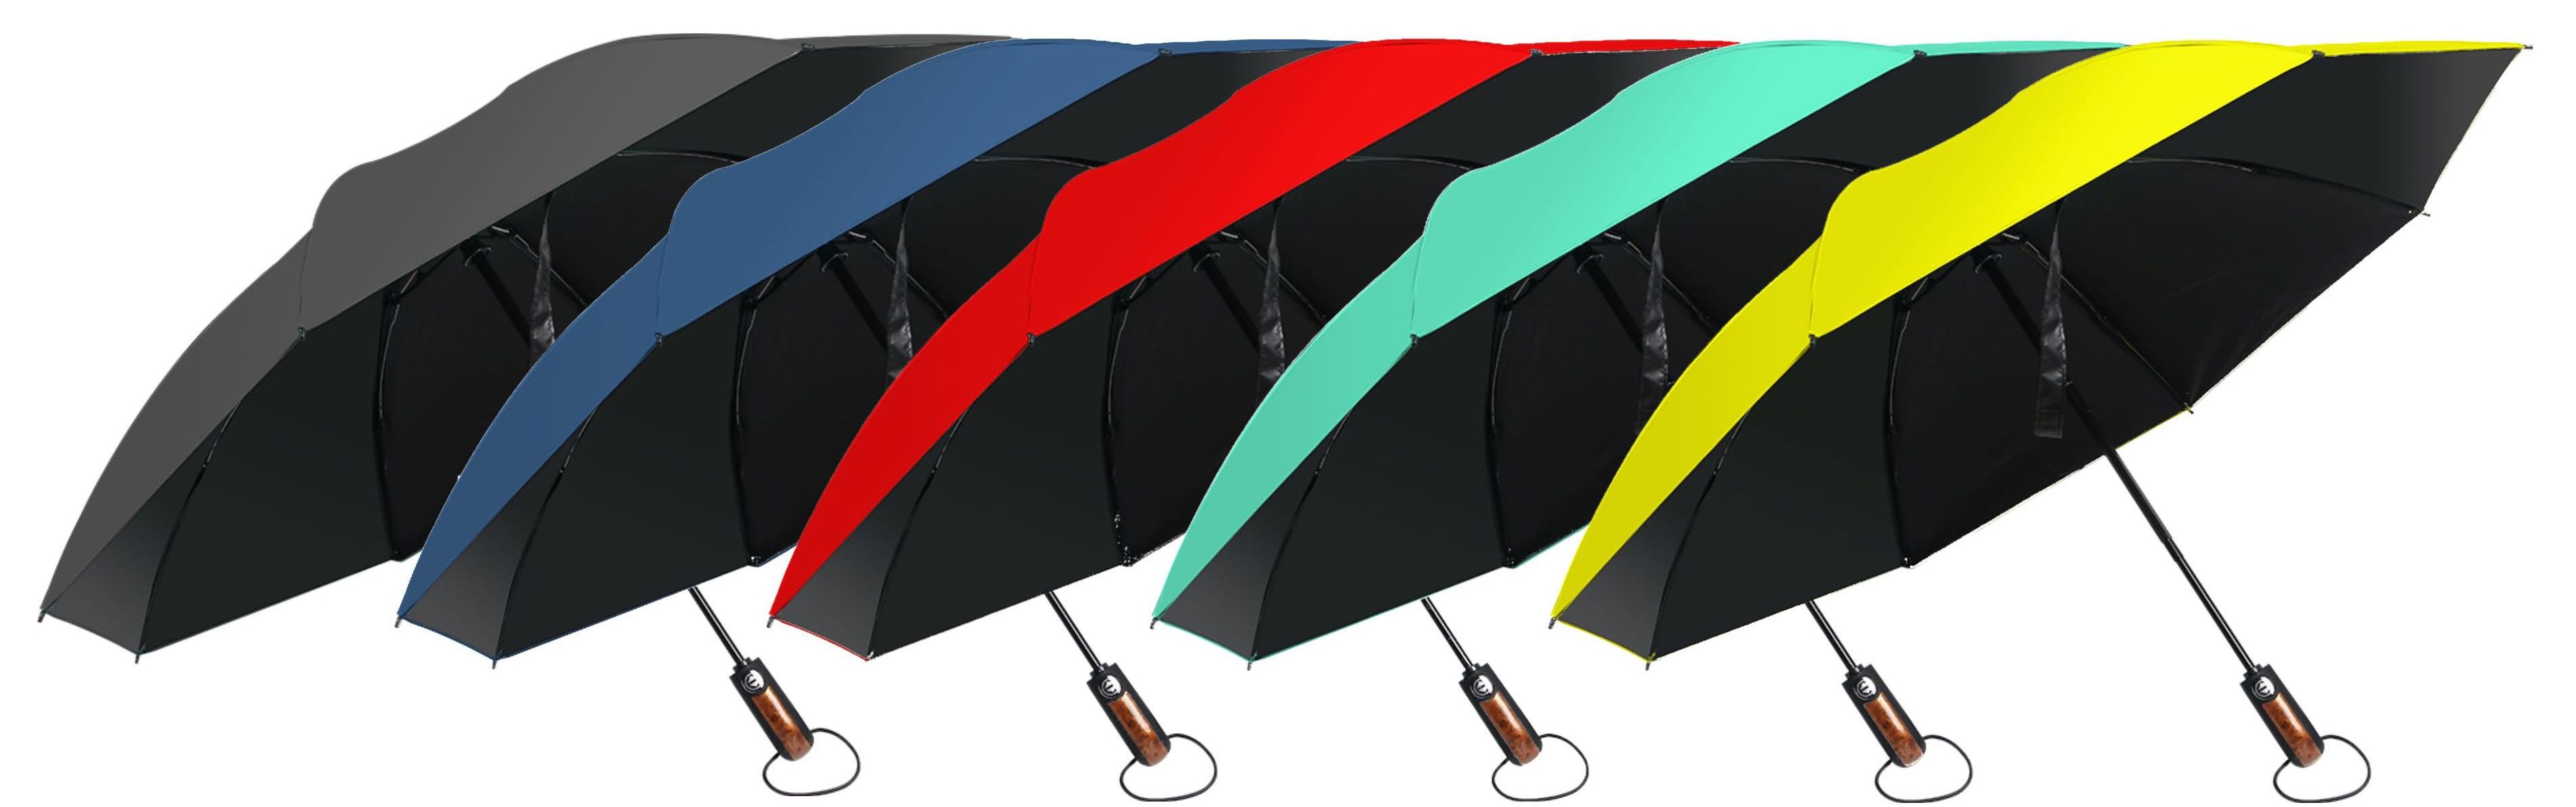 5 Hailstorm umbrellas of different colours, laid out next to each other